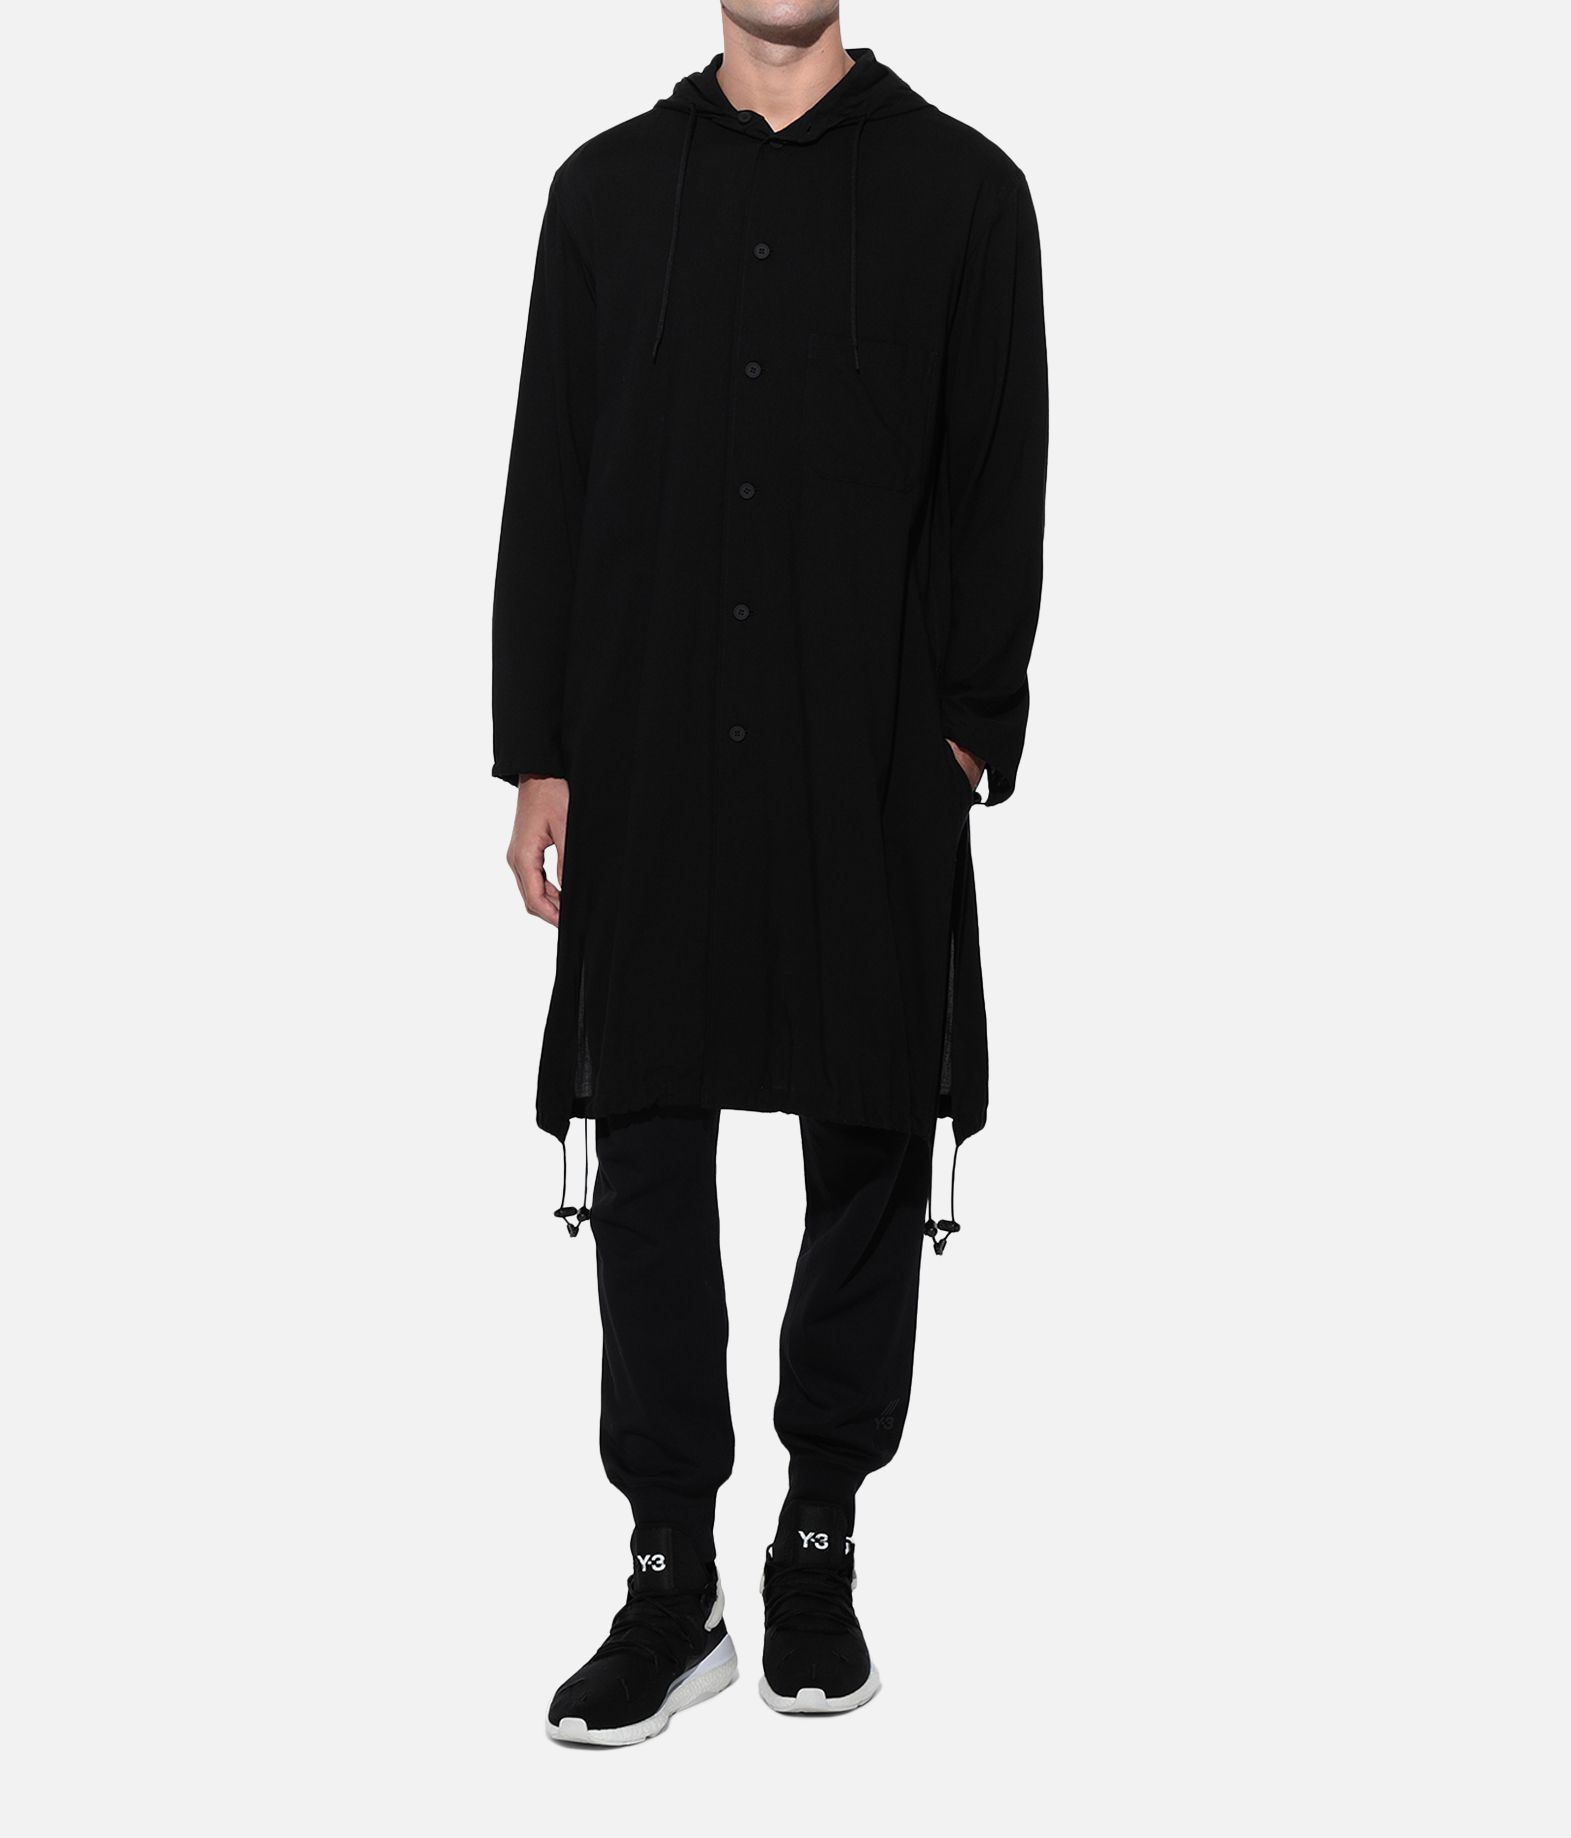 Y-3 Y-3 Hooded Long Shirt Camicia maniche lunghe Uomo a